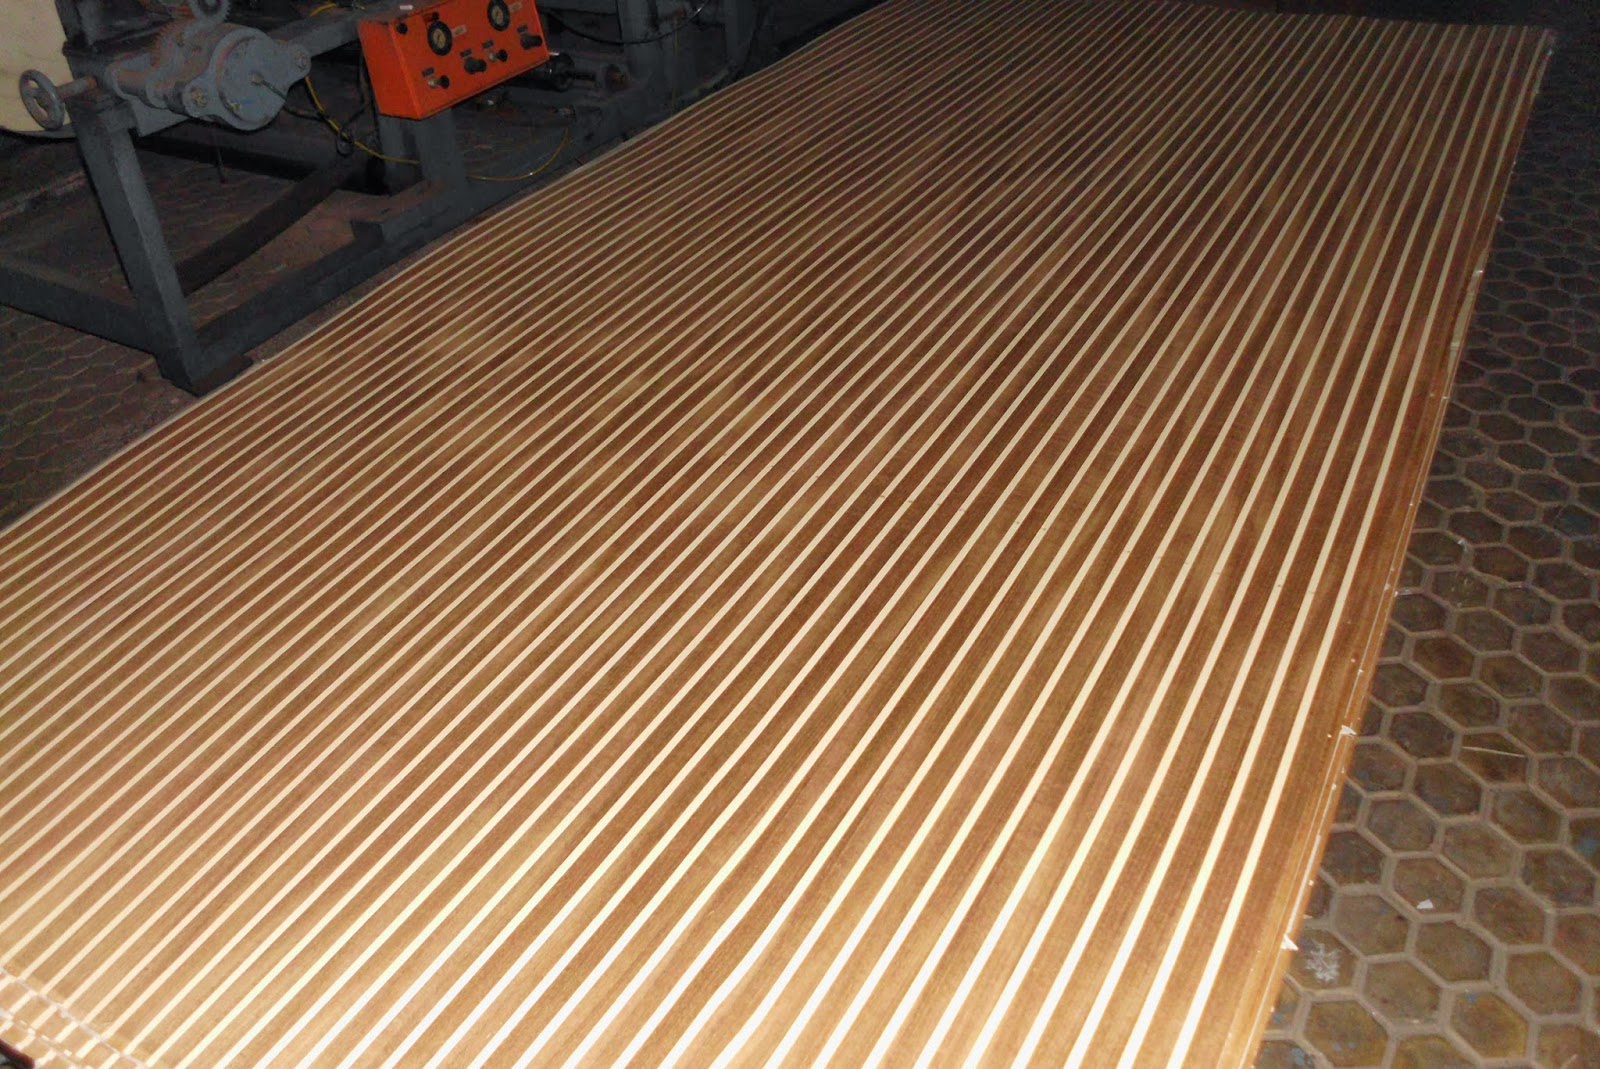 ckd boats roy mc bride teak and ash boat flooring 1600x1069 jpeg